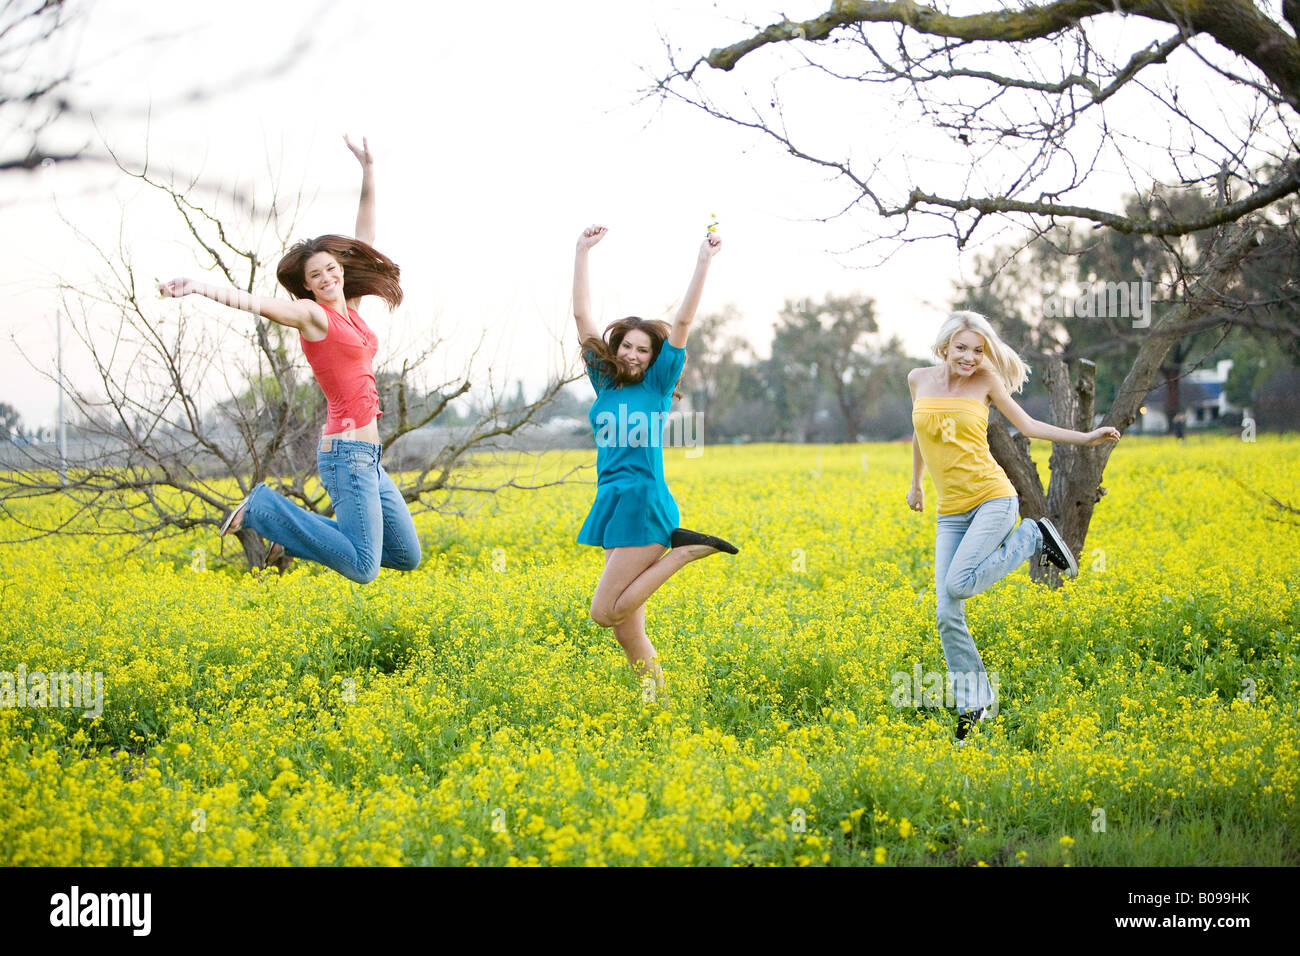 Three young women smiling and jumping in a yellow field of mustard plants. Stock Photo